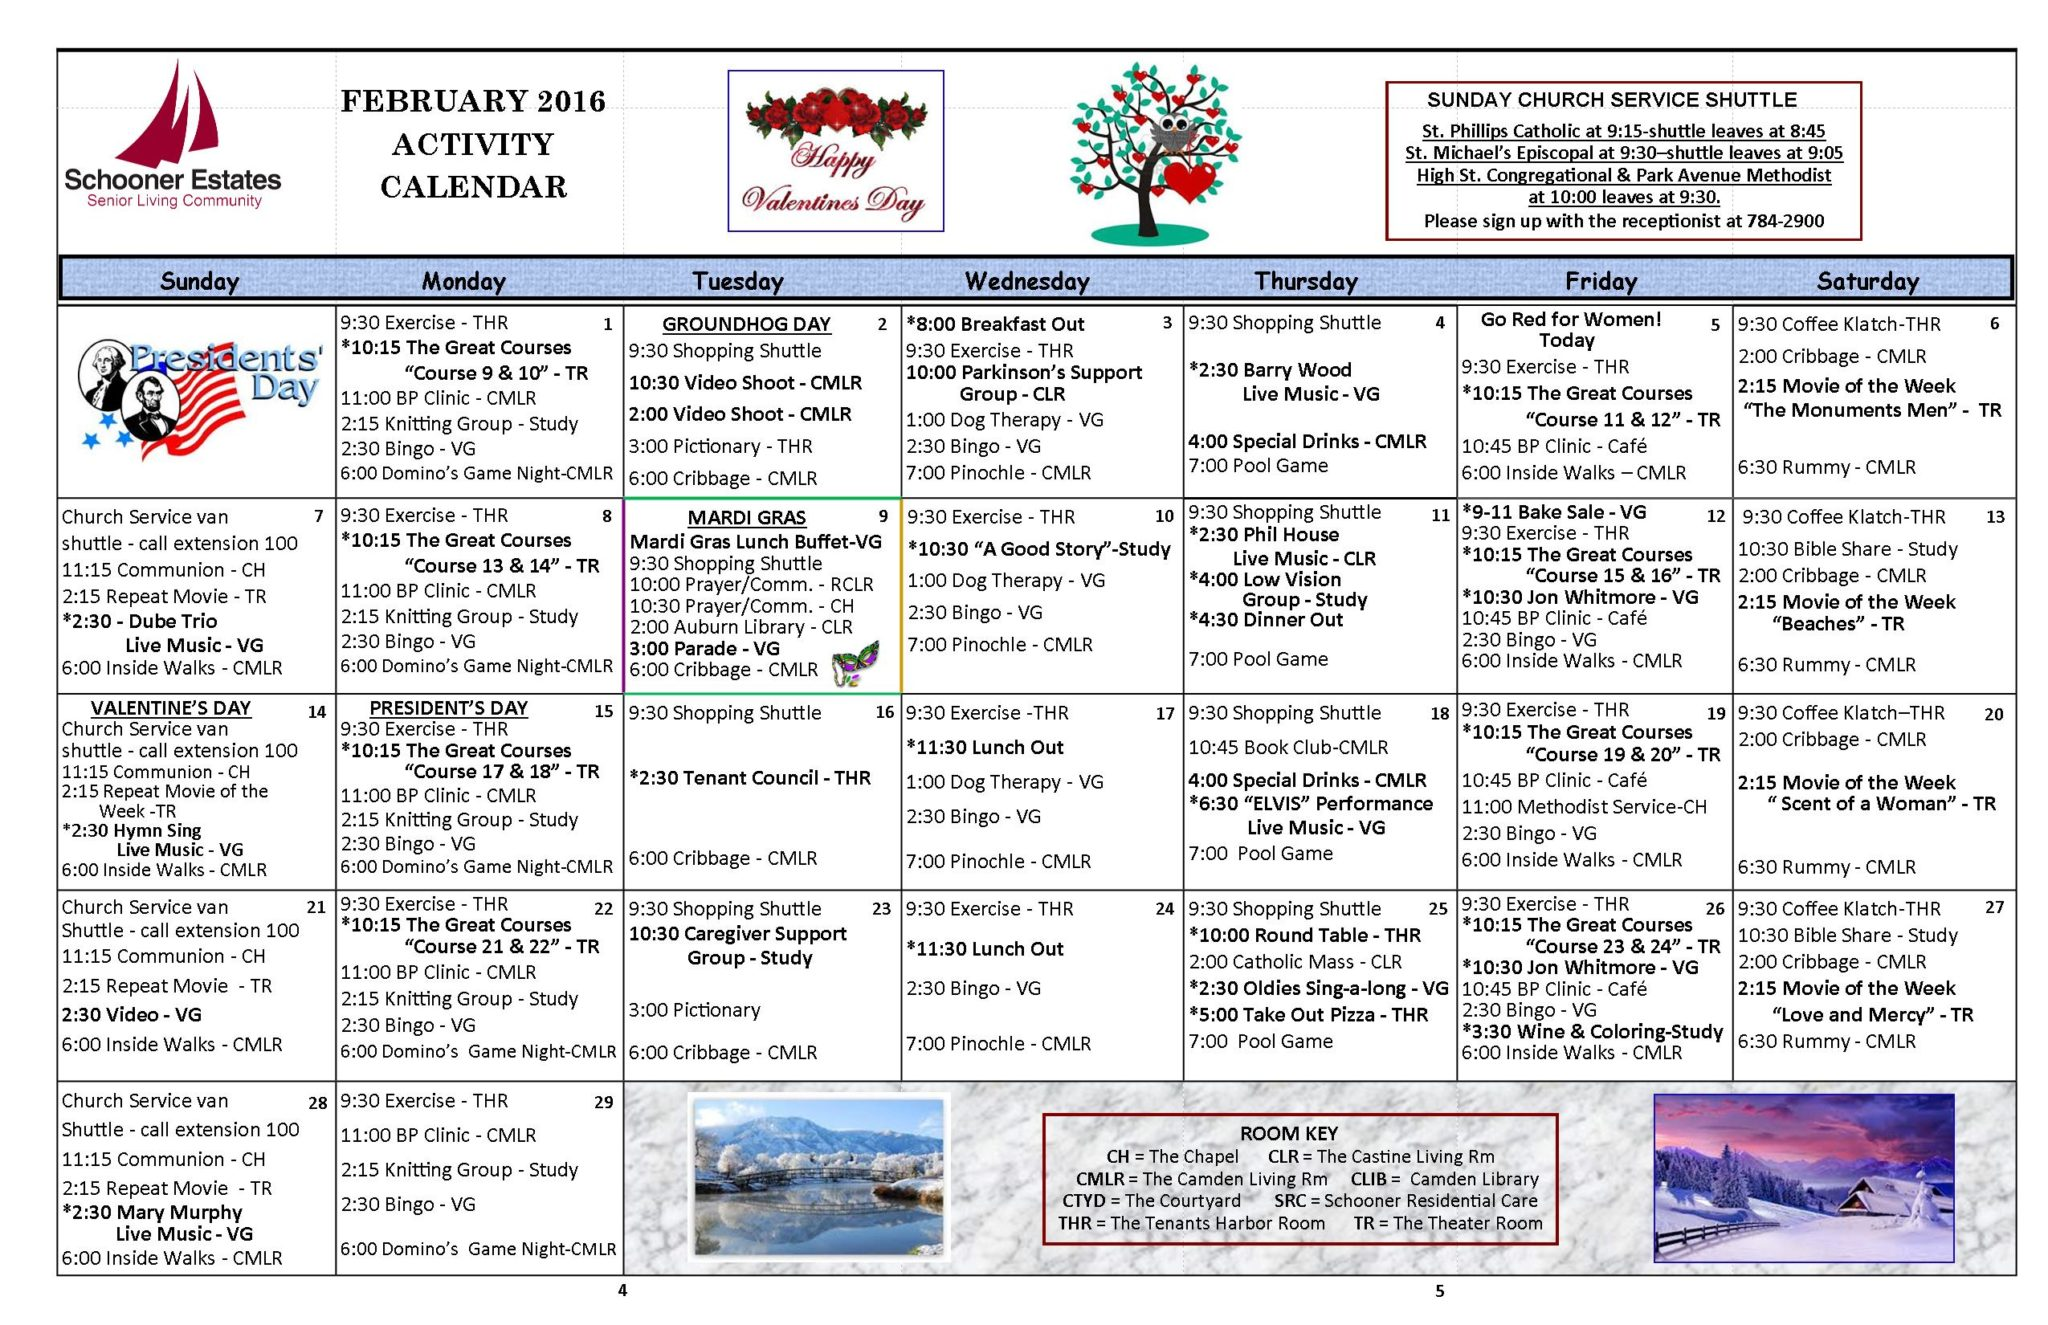 February 2016 Independent Living Activity Calendar